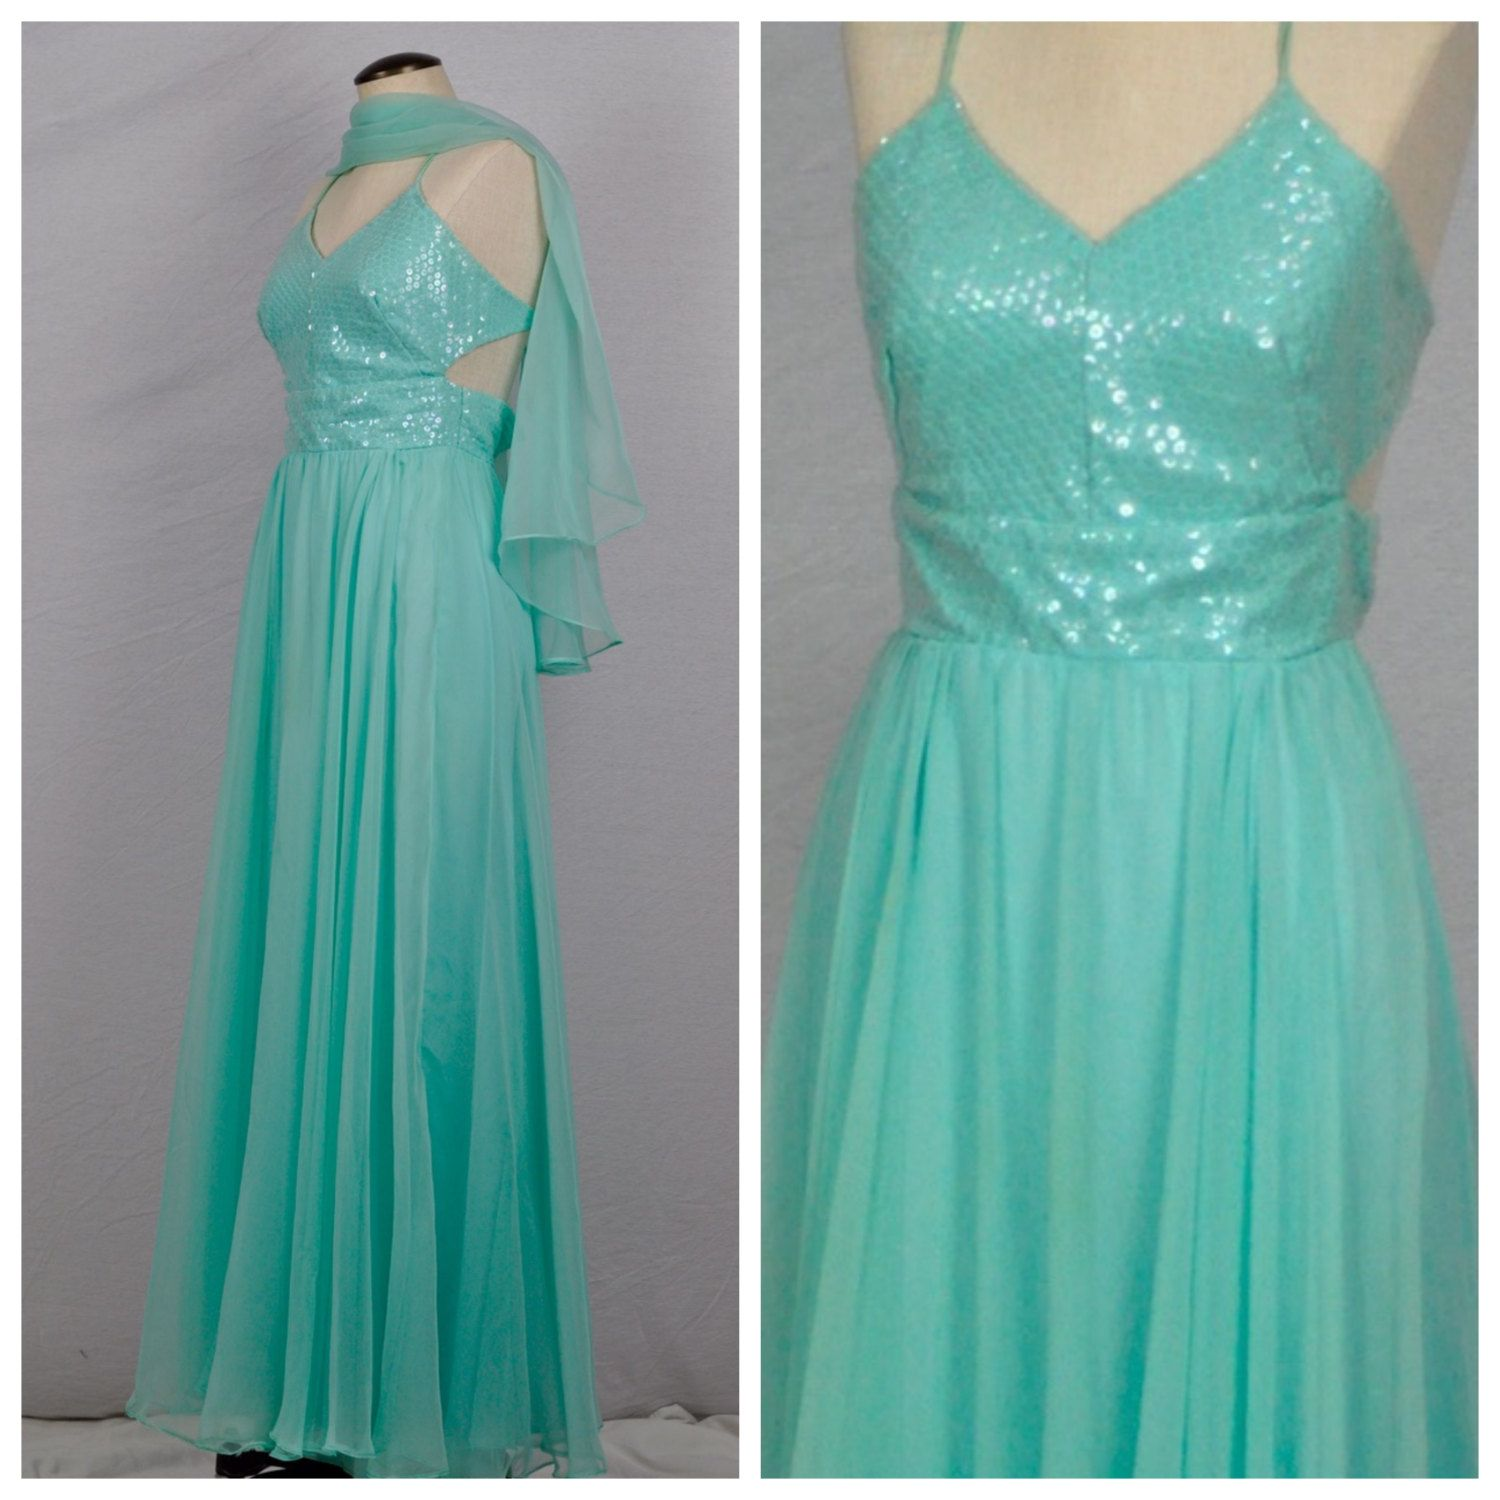 Vintage 1980s Sequin Prom Dresses | Dress images